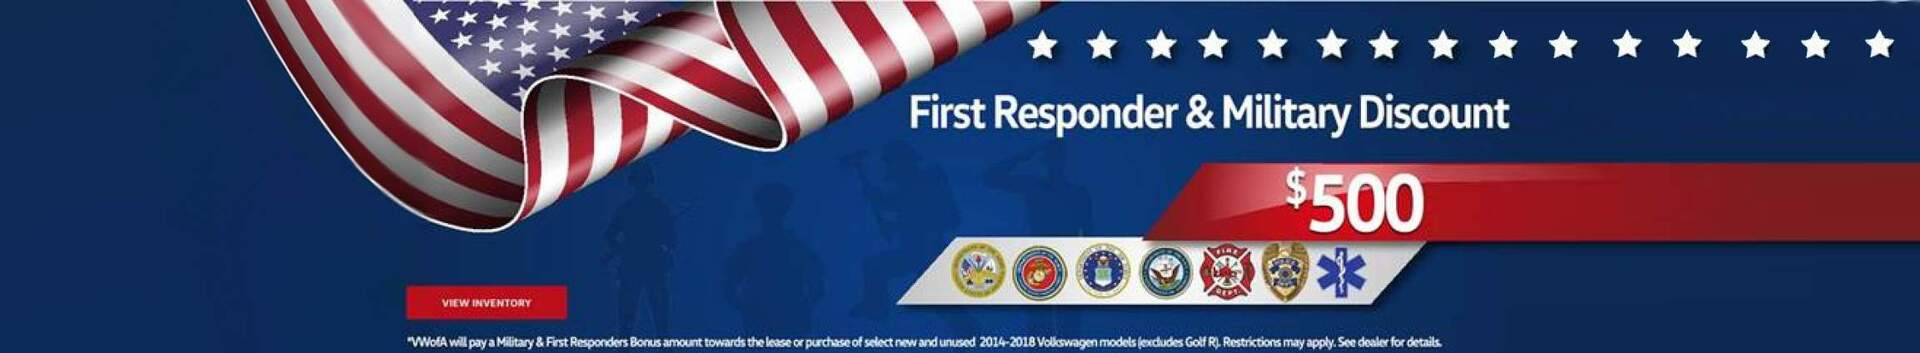 Military - First Responder Discount